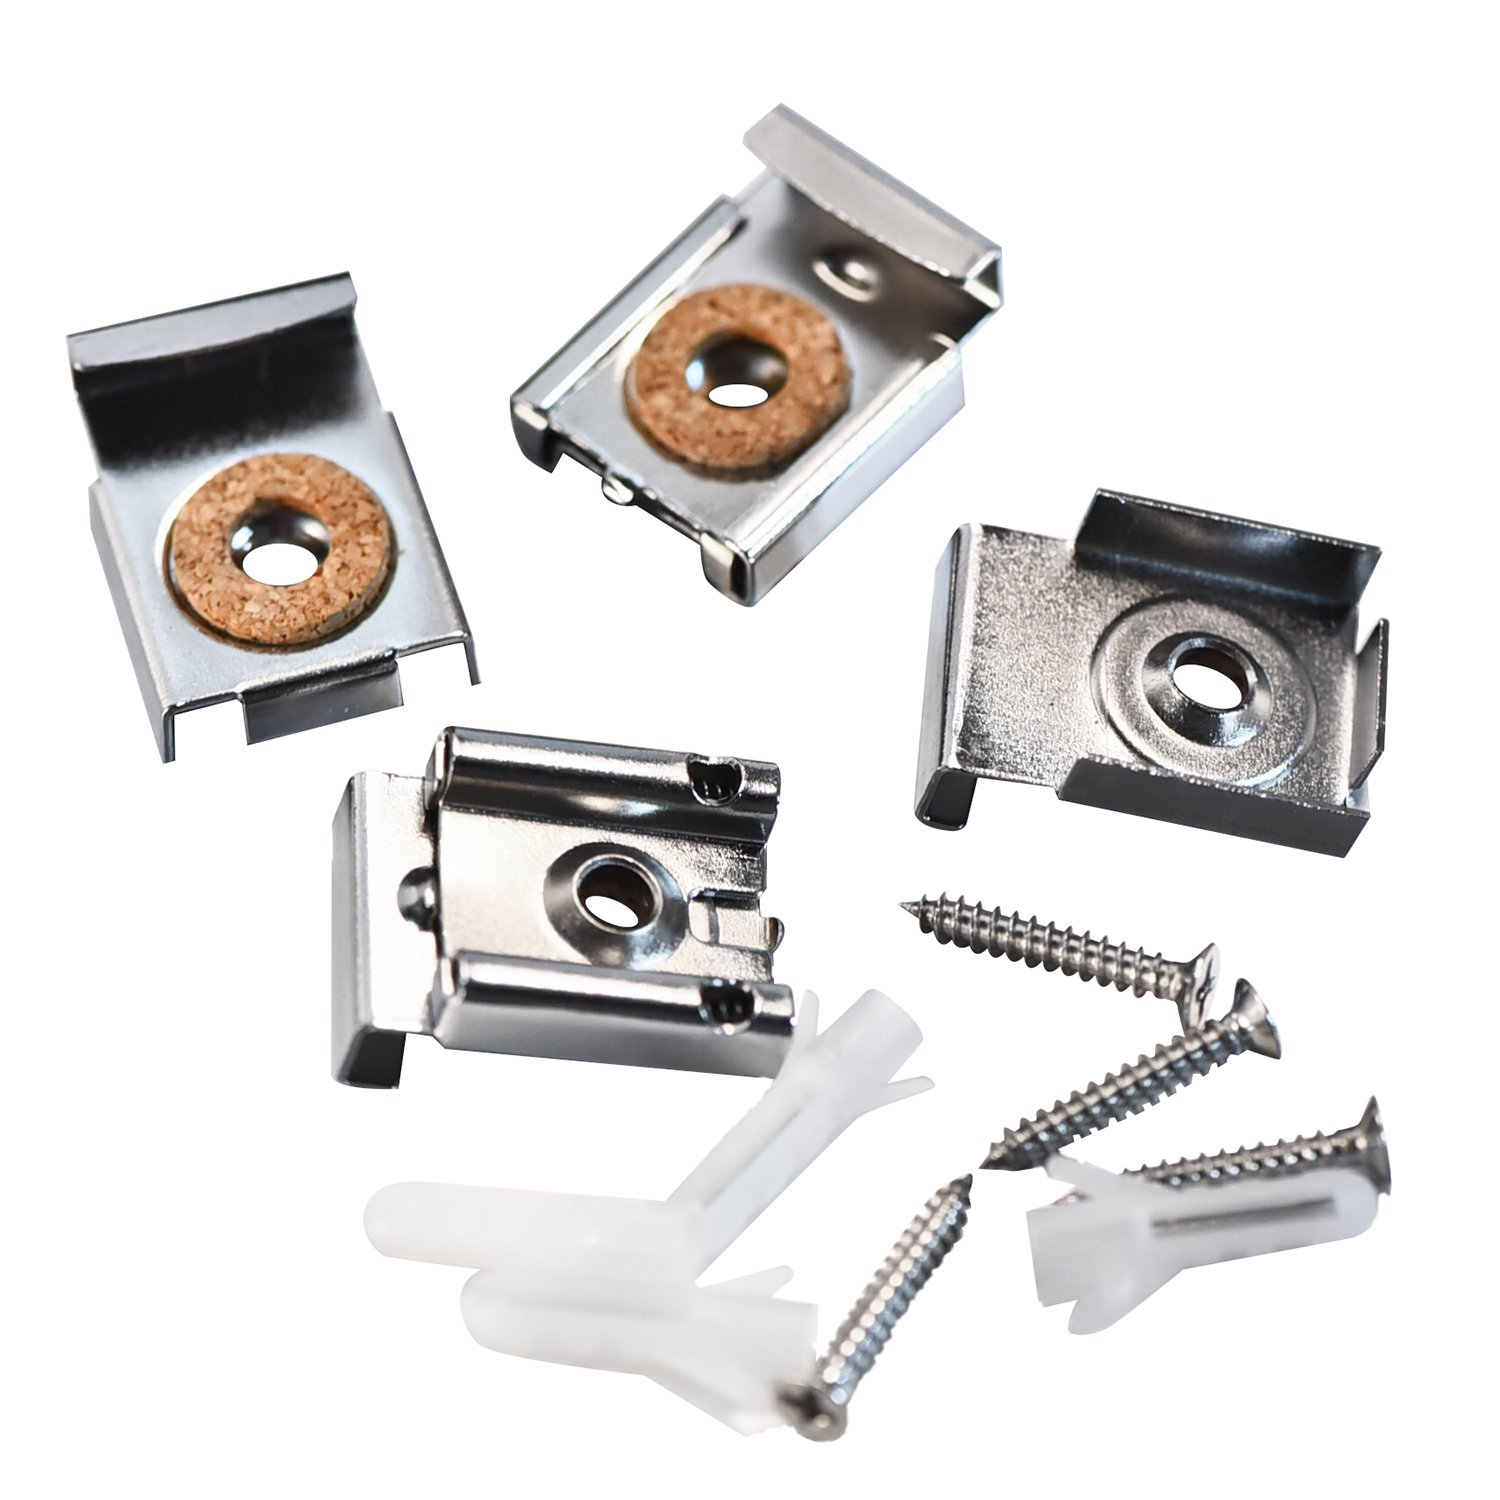 Shappy 2 Sets (8 Pieces) Spring Loaded Mirror Hanger Clips Set Unframed Mirror Mount Clips with Rawl Plugs and Screws